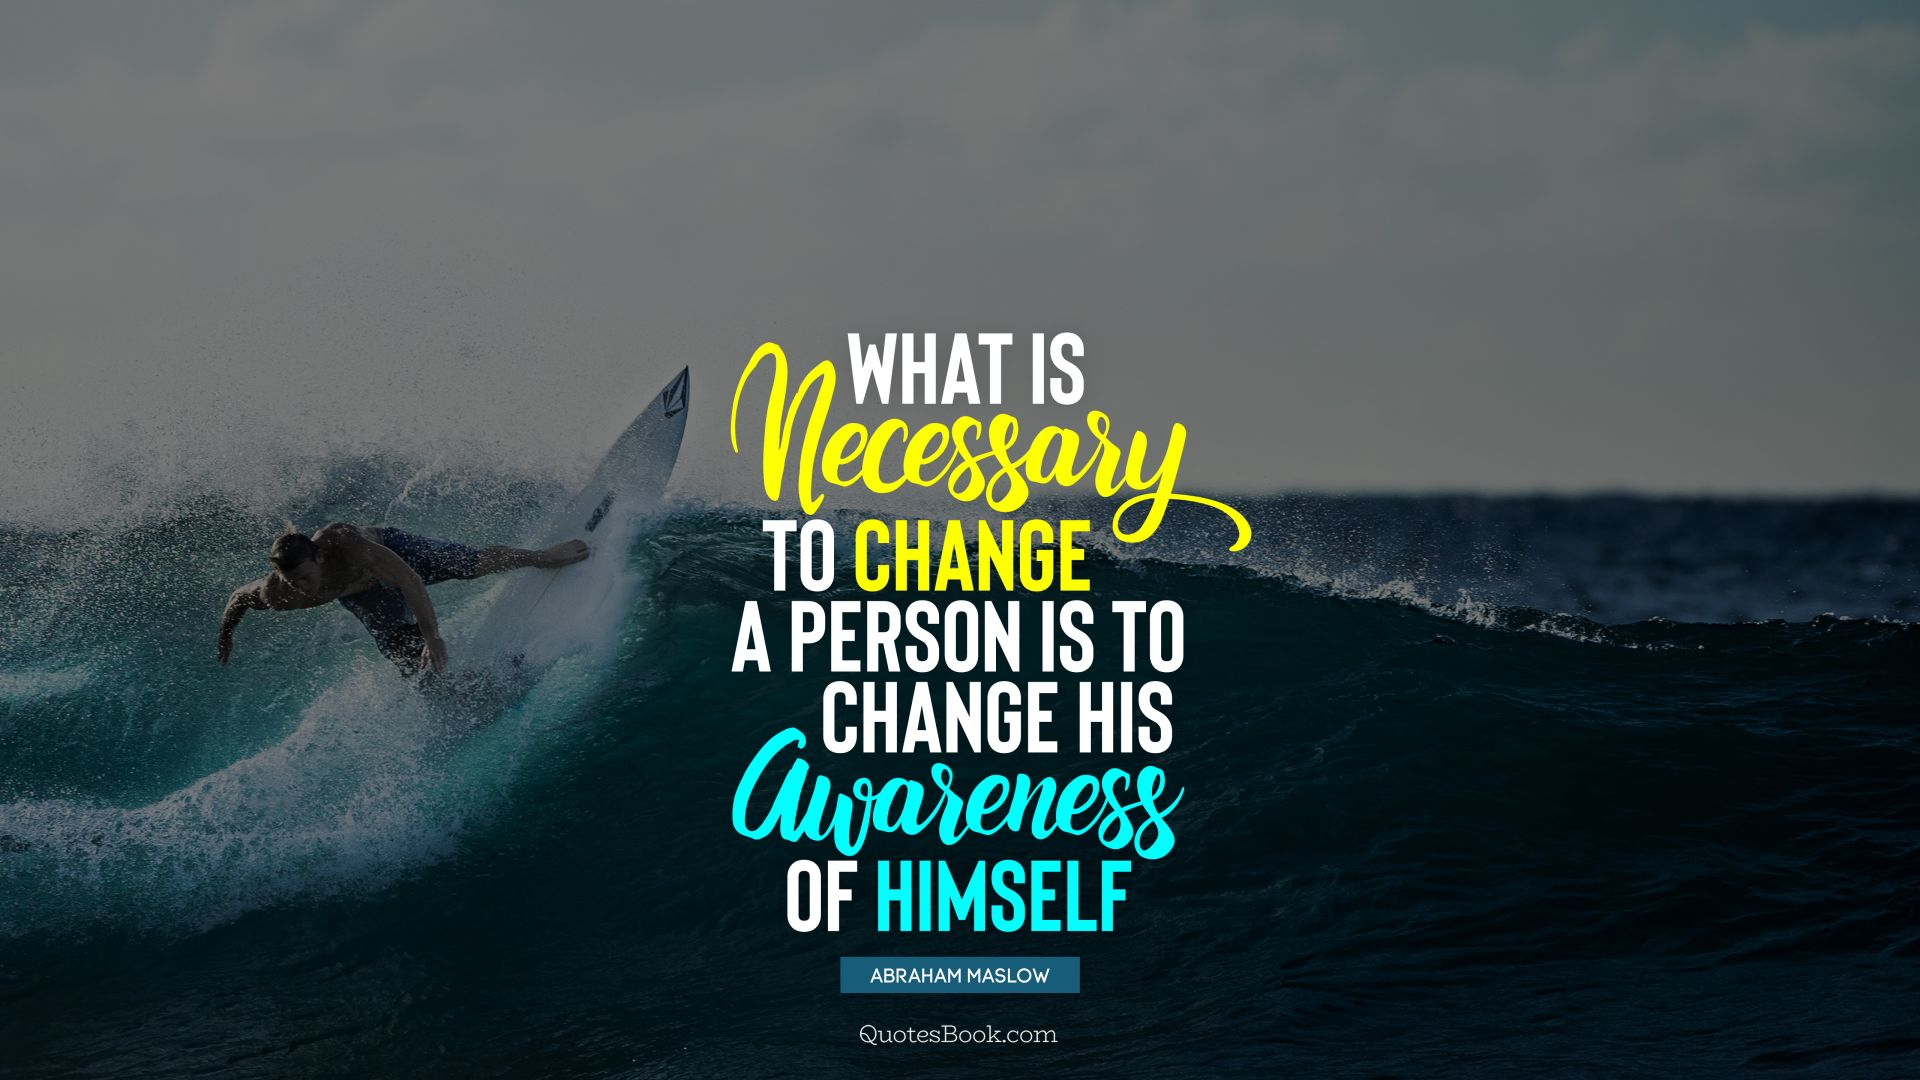 What is necessary to change a person is to change his awareness of himself. - Quote by Abraham Maslow